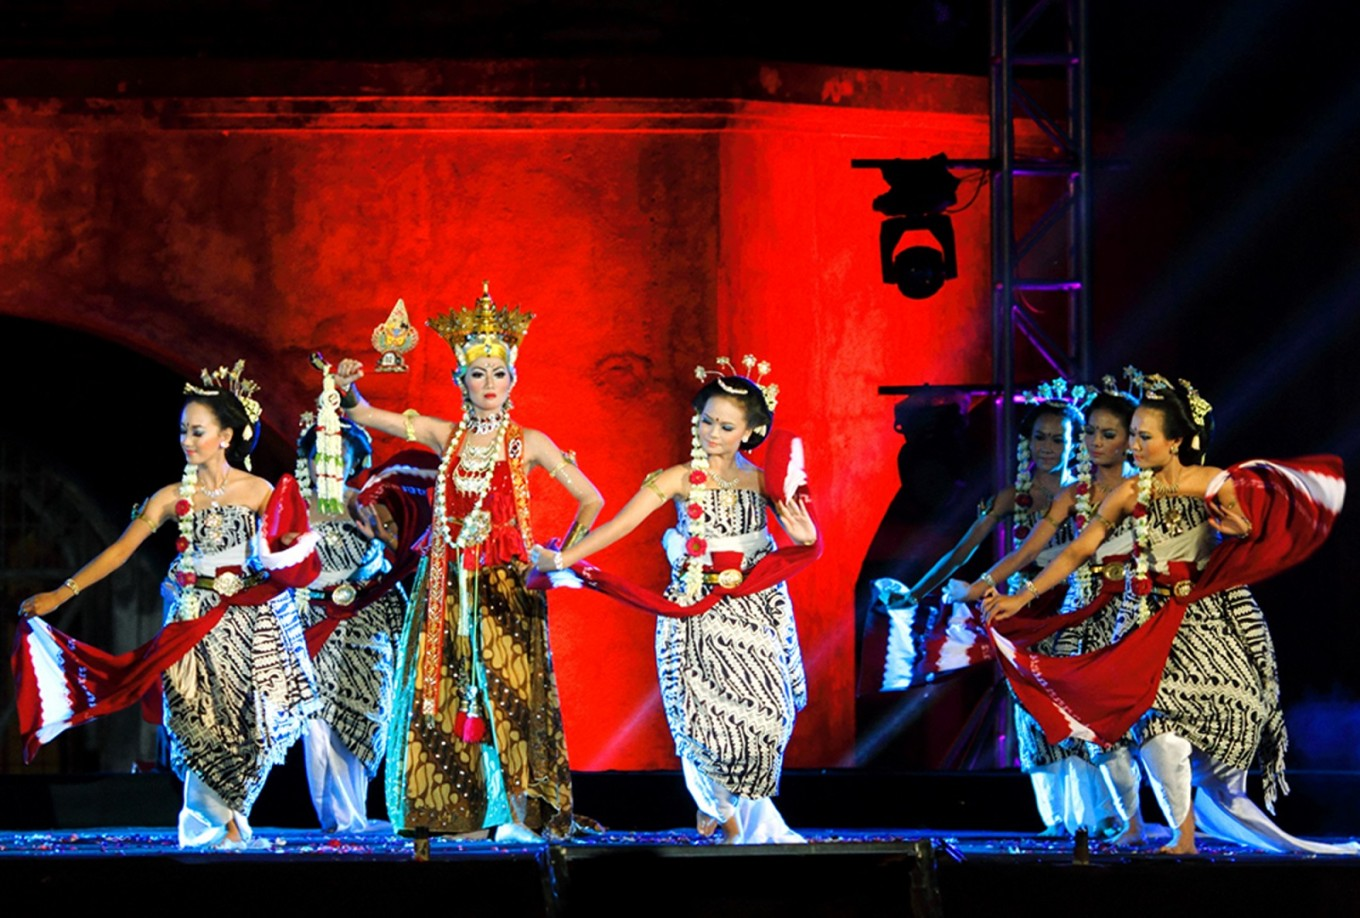 Dancers perform the 'Bidadari Genit' (flirty angels) dance choreographed by Paundra Karna.